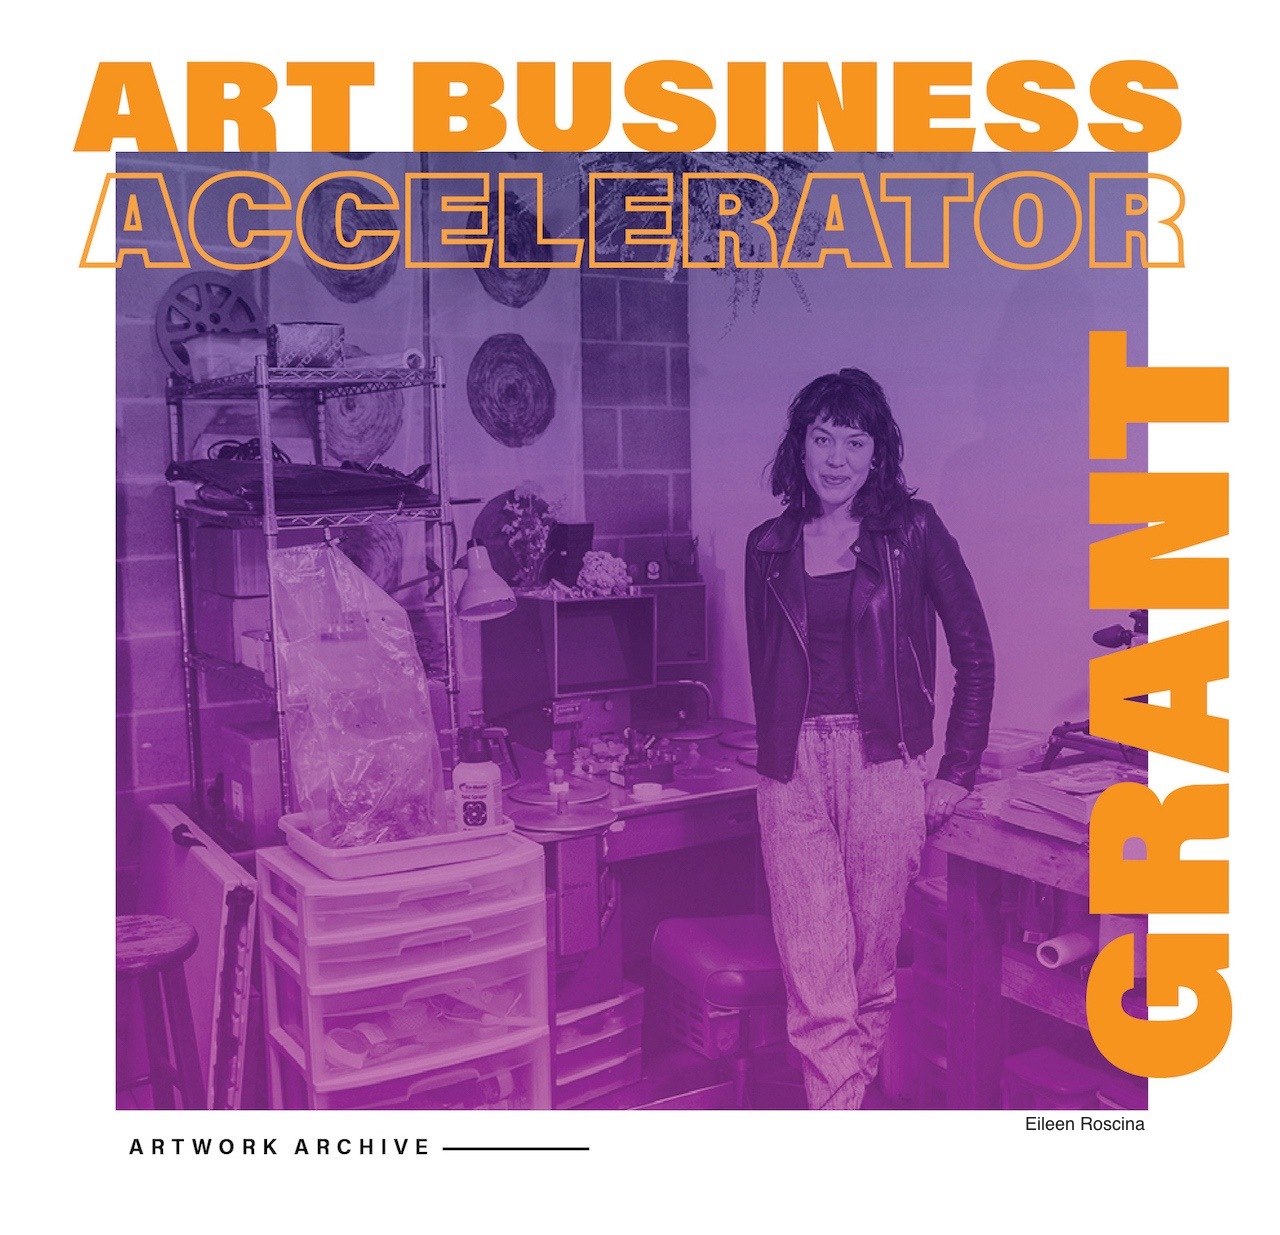 Art Business Accelerator Grant